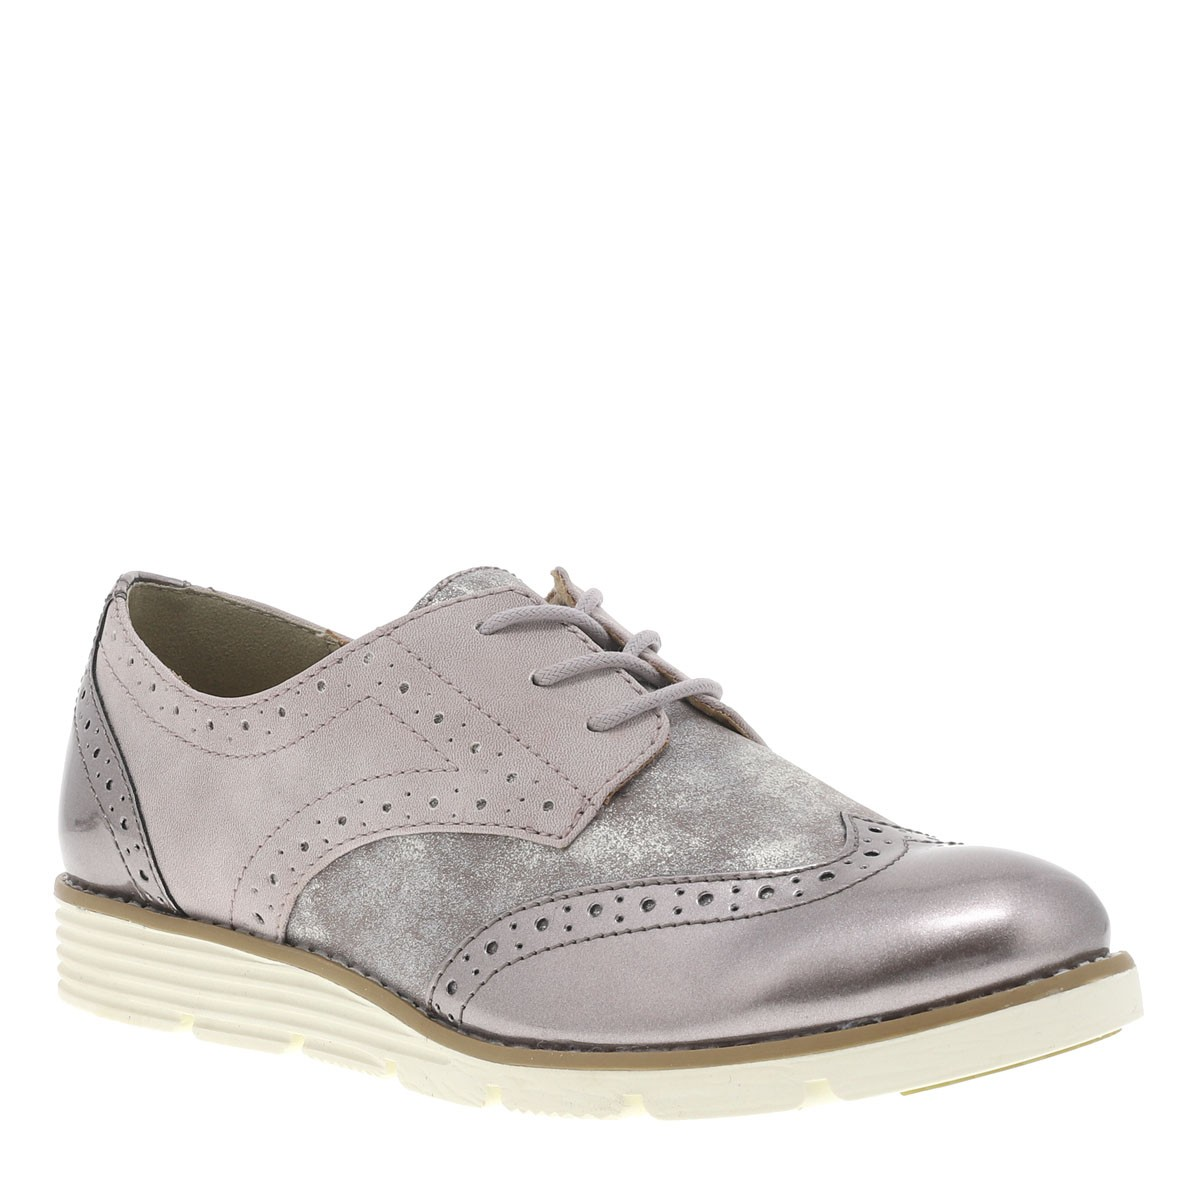 8a5ee4adf769 S Mode oliver Chaussures Femme Rose Ccv pq7Z1